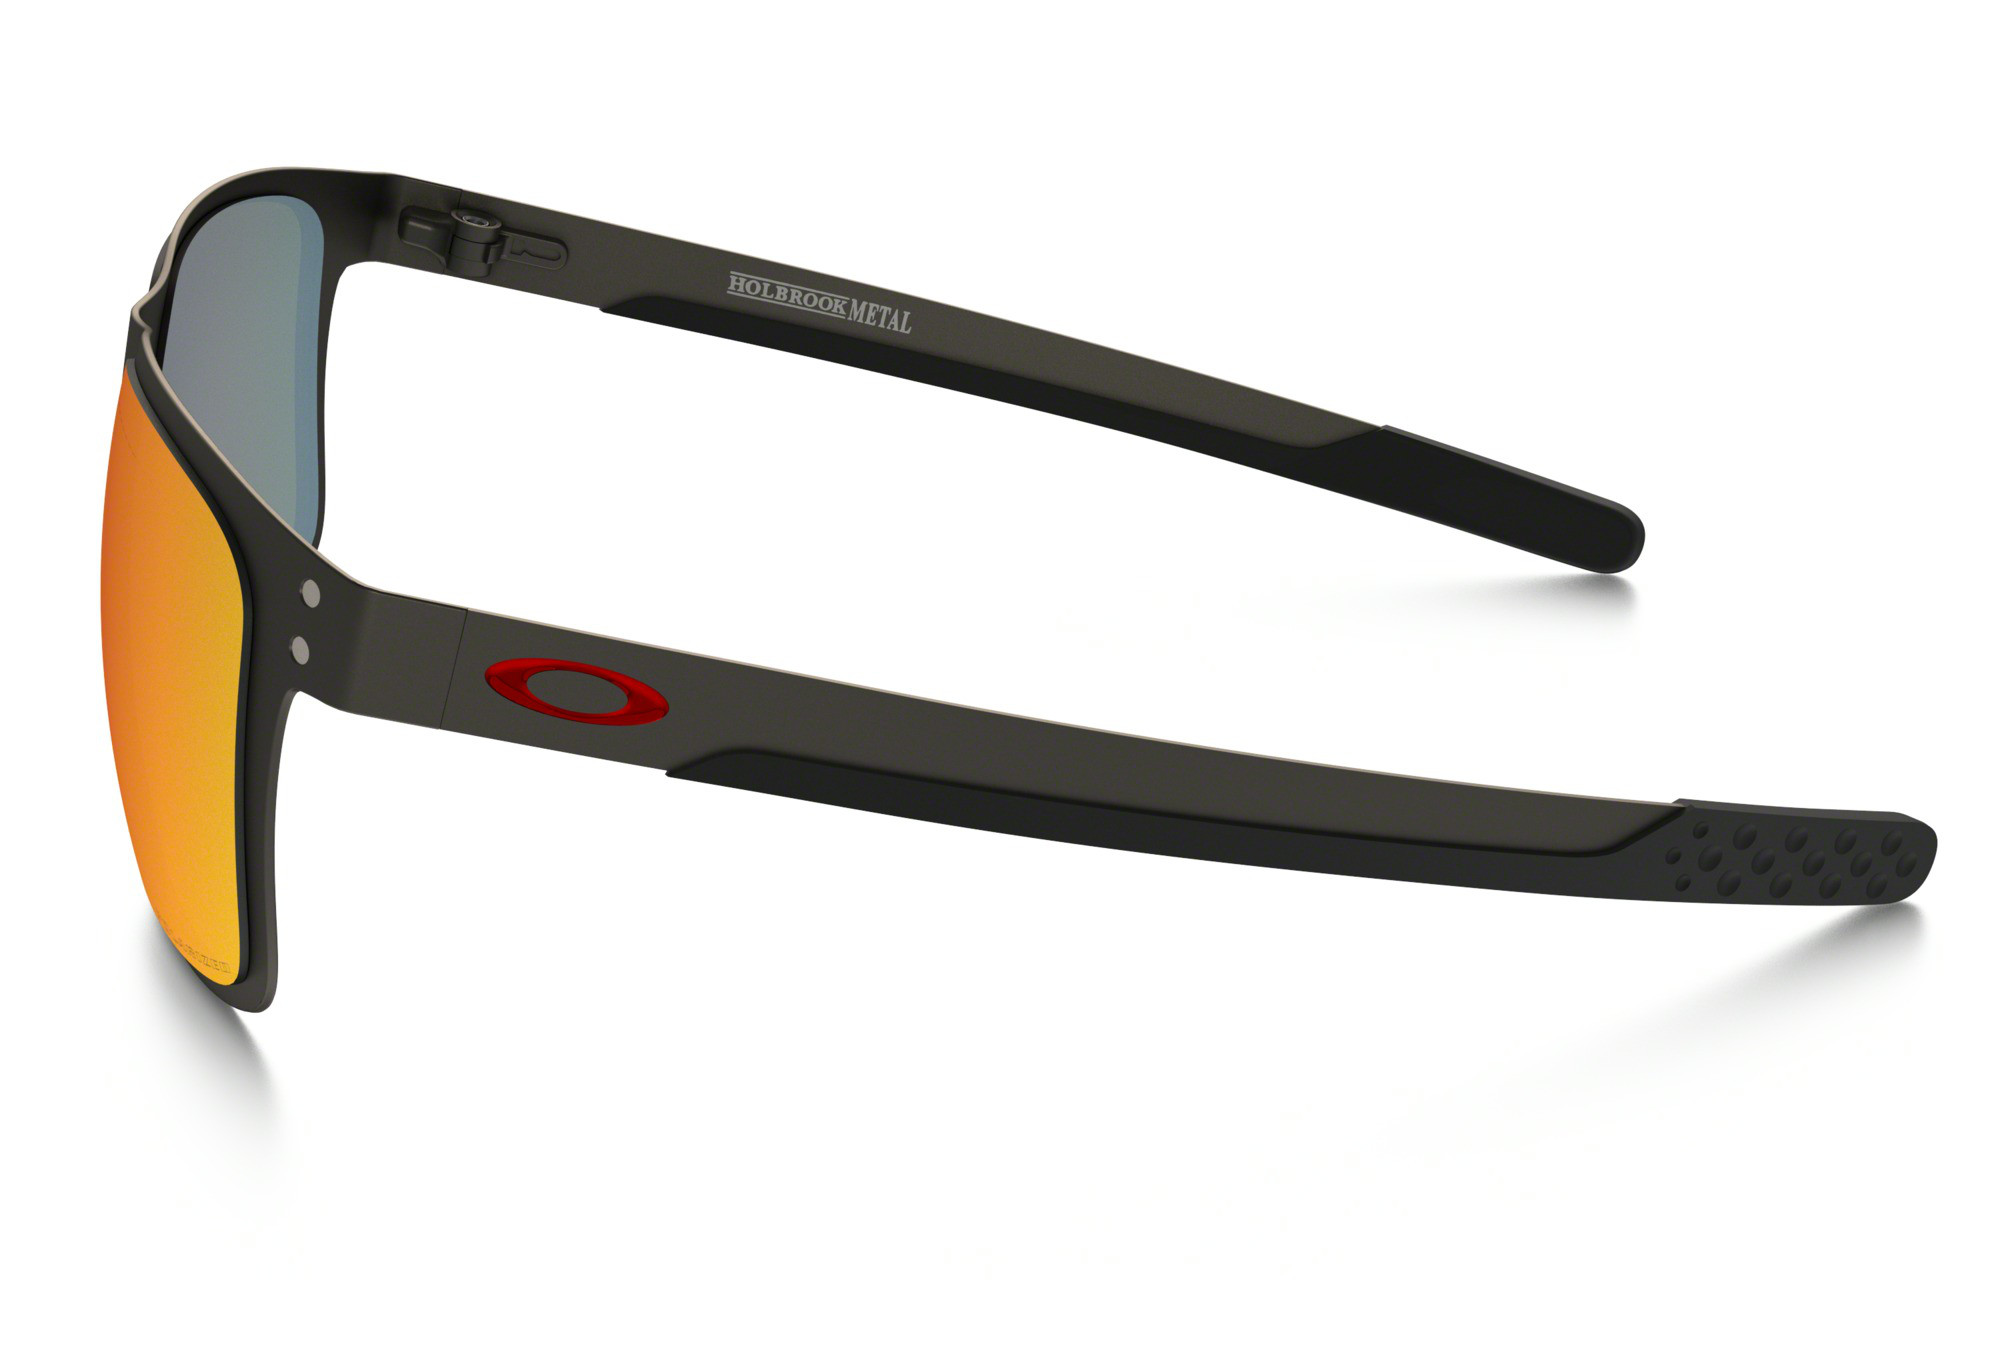 7fe76e80a0 OAKLEY Sunglasses Holbrook Metal Matte Gunmetal Torch Iridium Polarized Ref  OO4123-0555